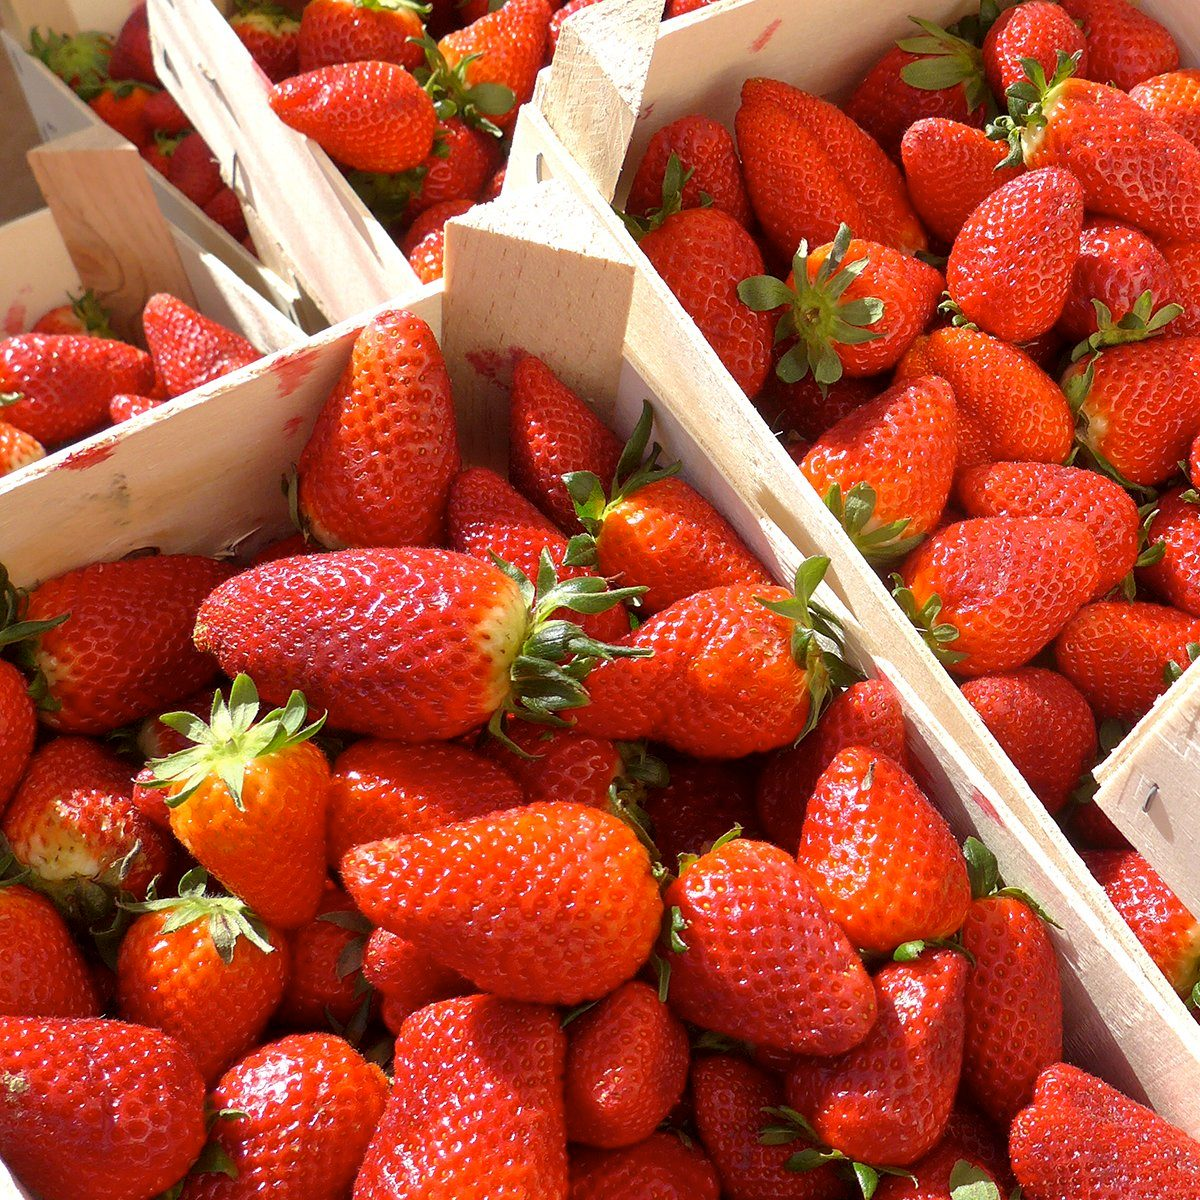 Fresh strawberries in wooden boxes, ready for sale.